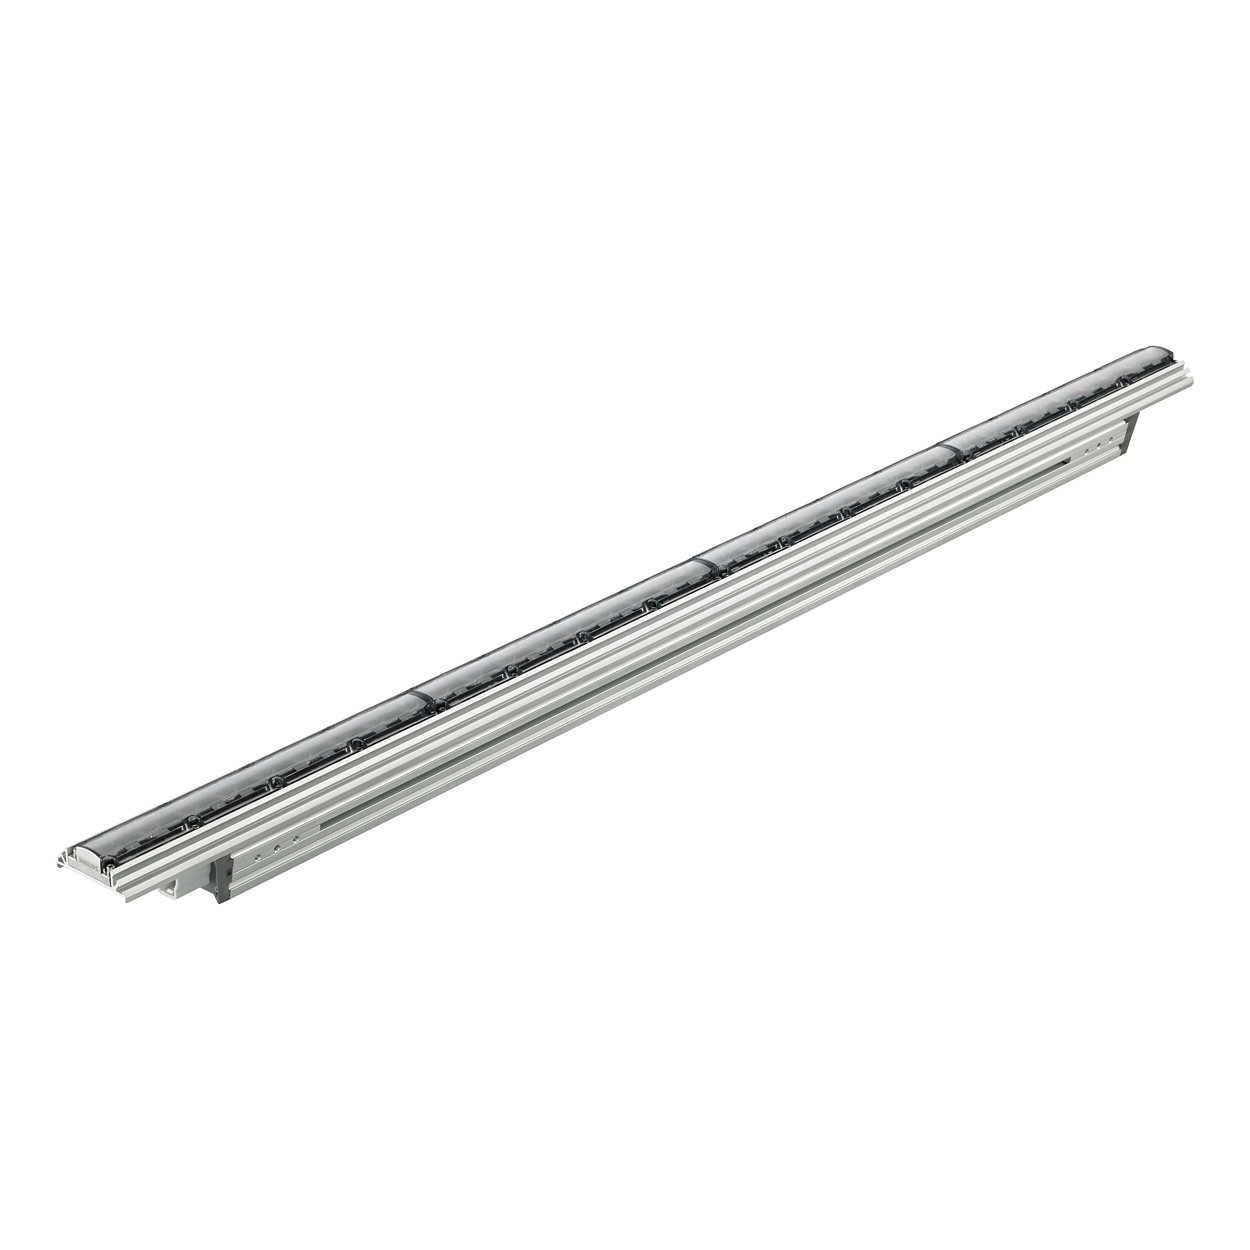 iW Graze QLX Powercore – Performance linear exterior LED wall grazing luminaire with intelligent white light